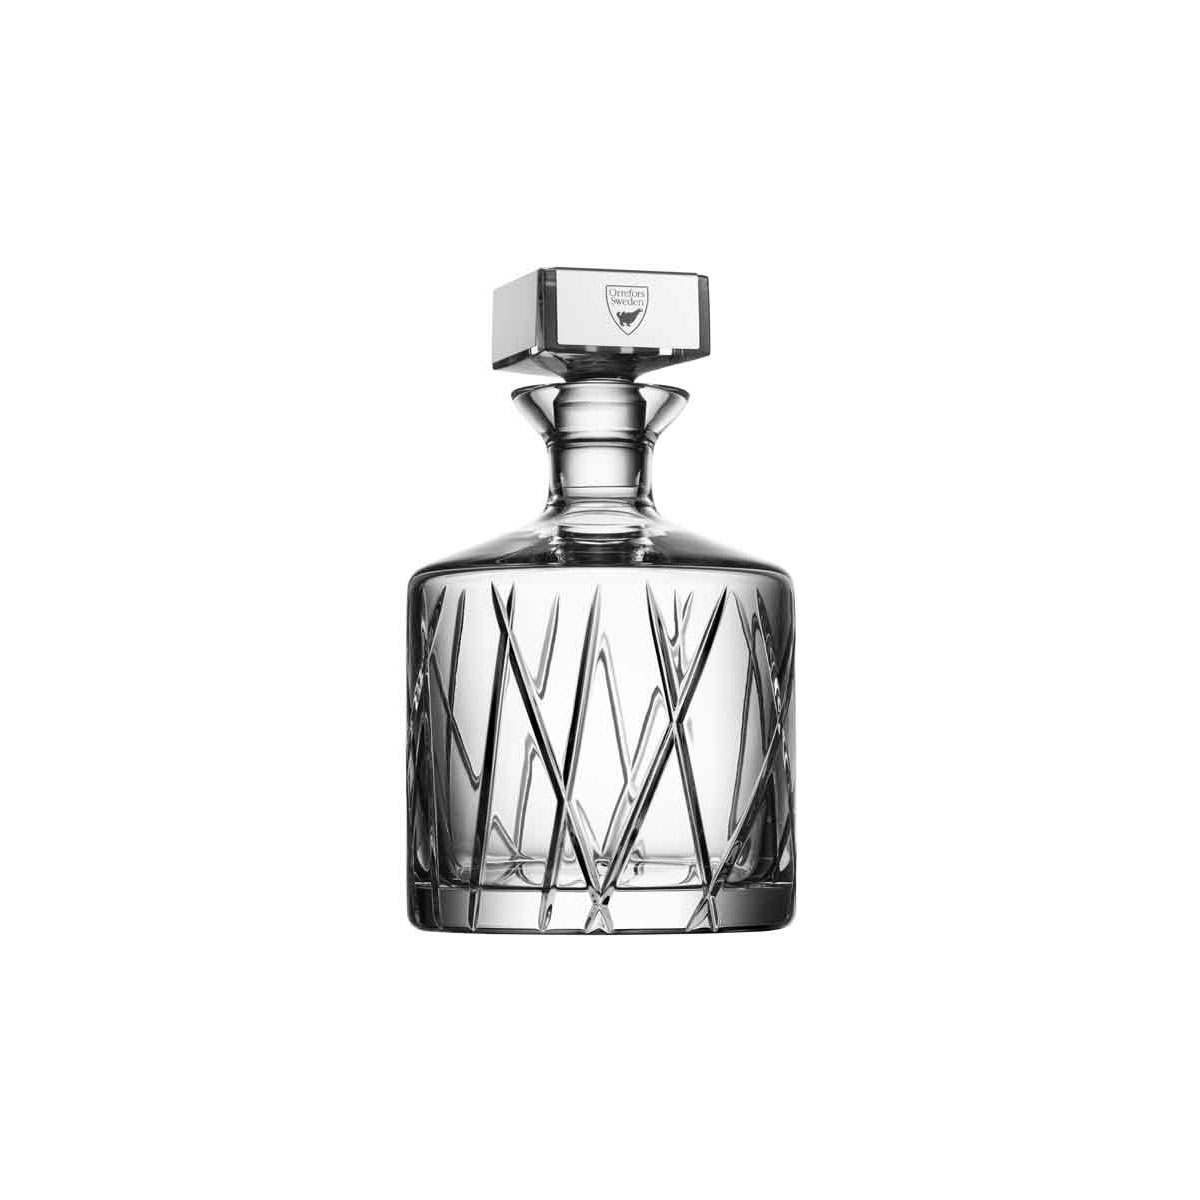 Orrefors Crystal, City Crystal Whiskey Decanter